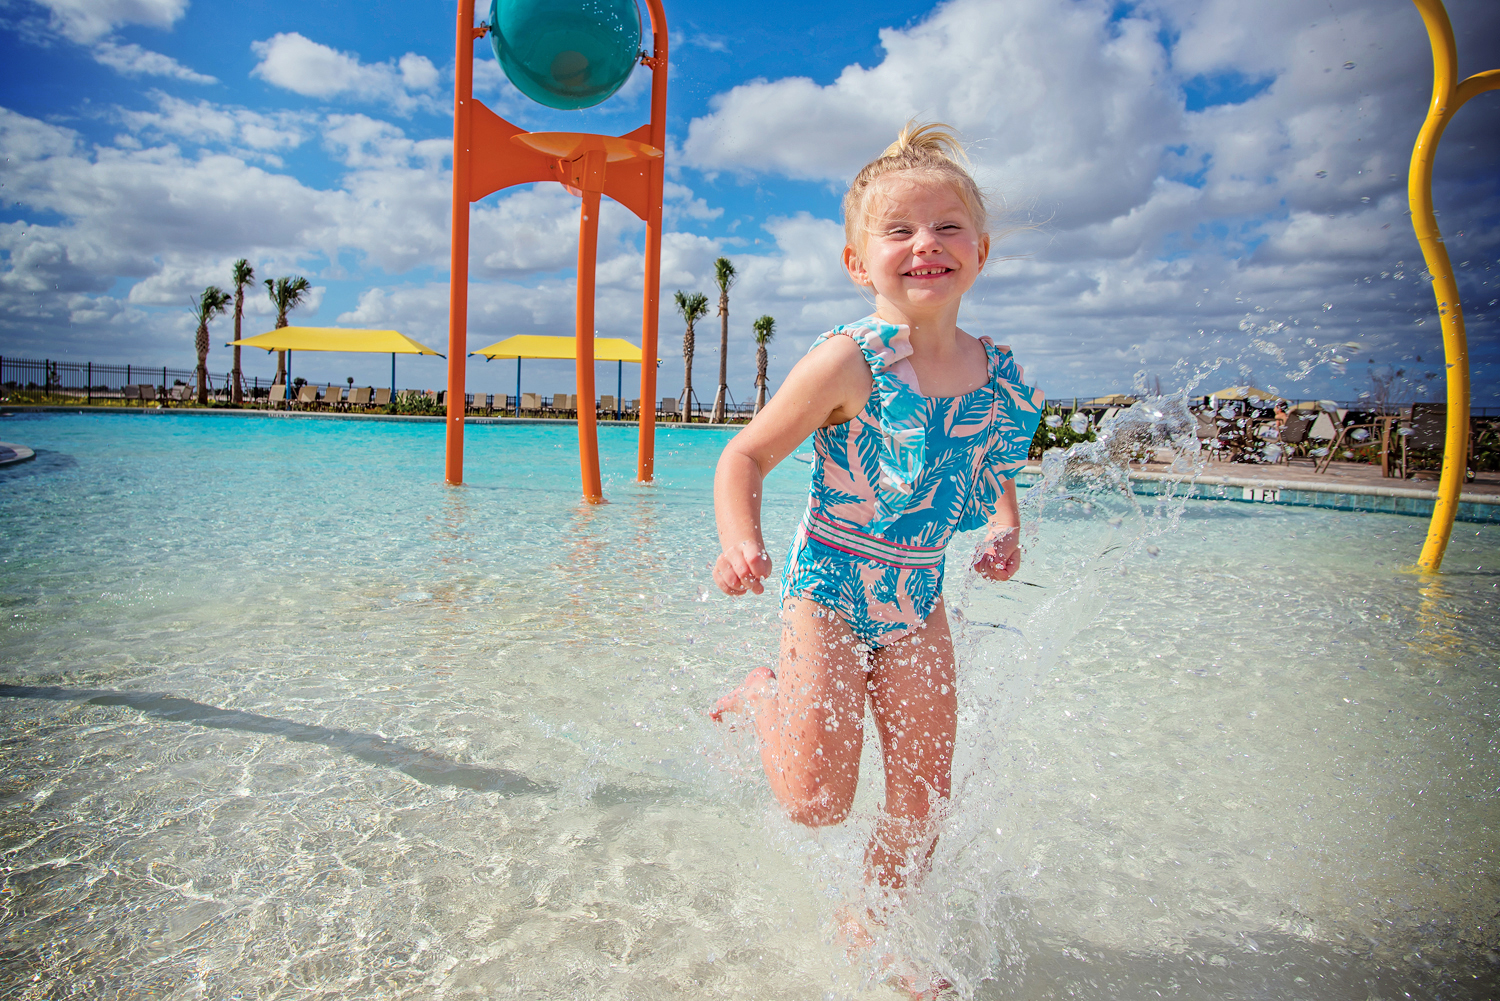 Young girl running in splash park in pool.